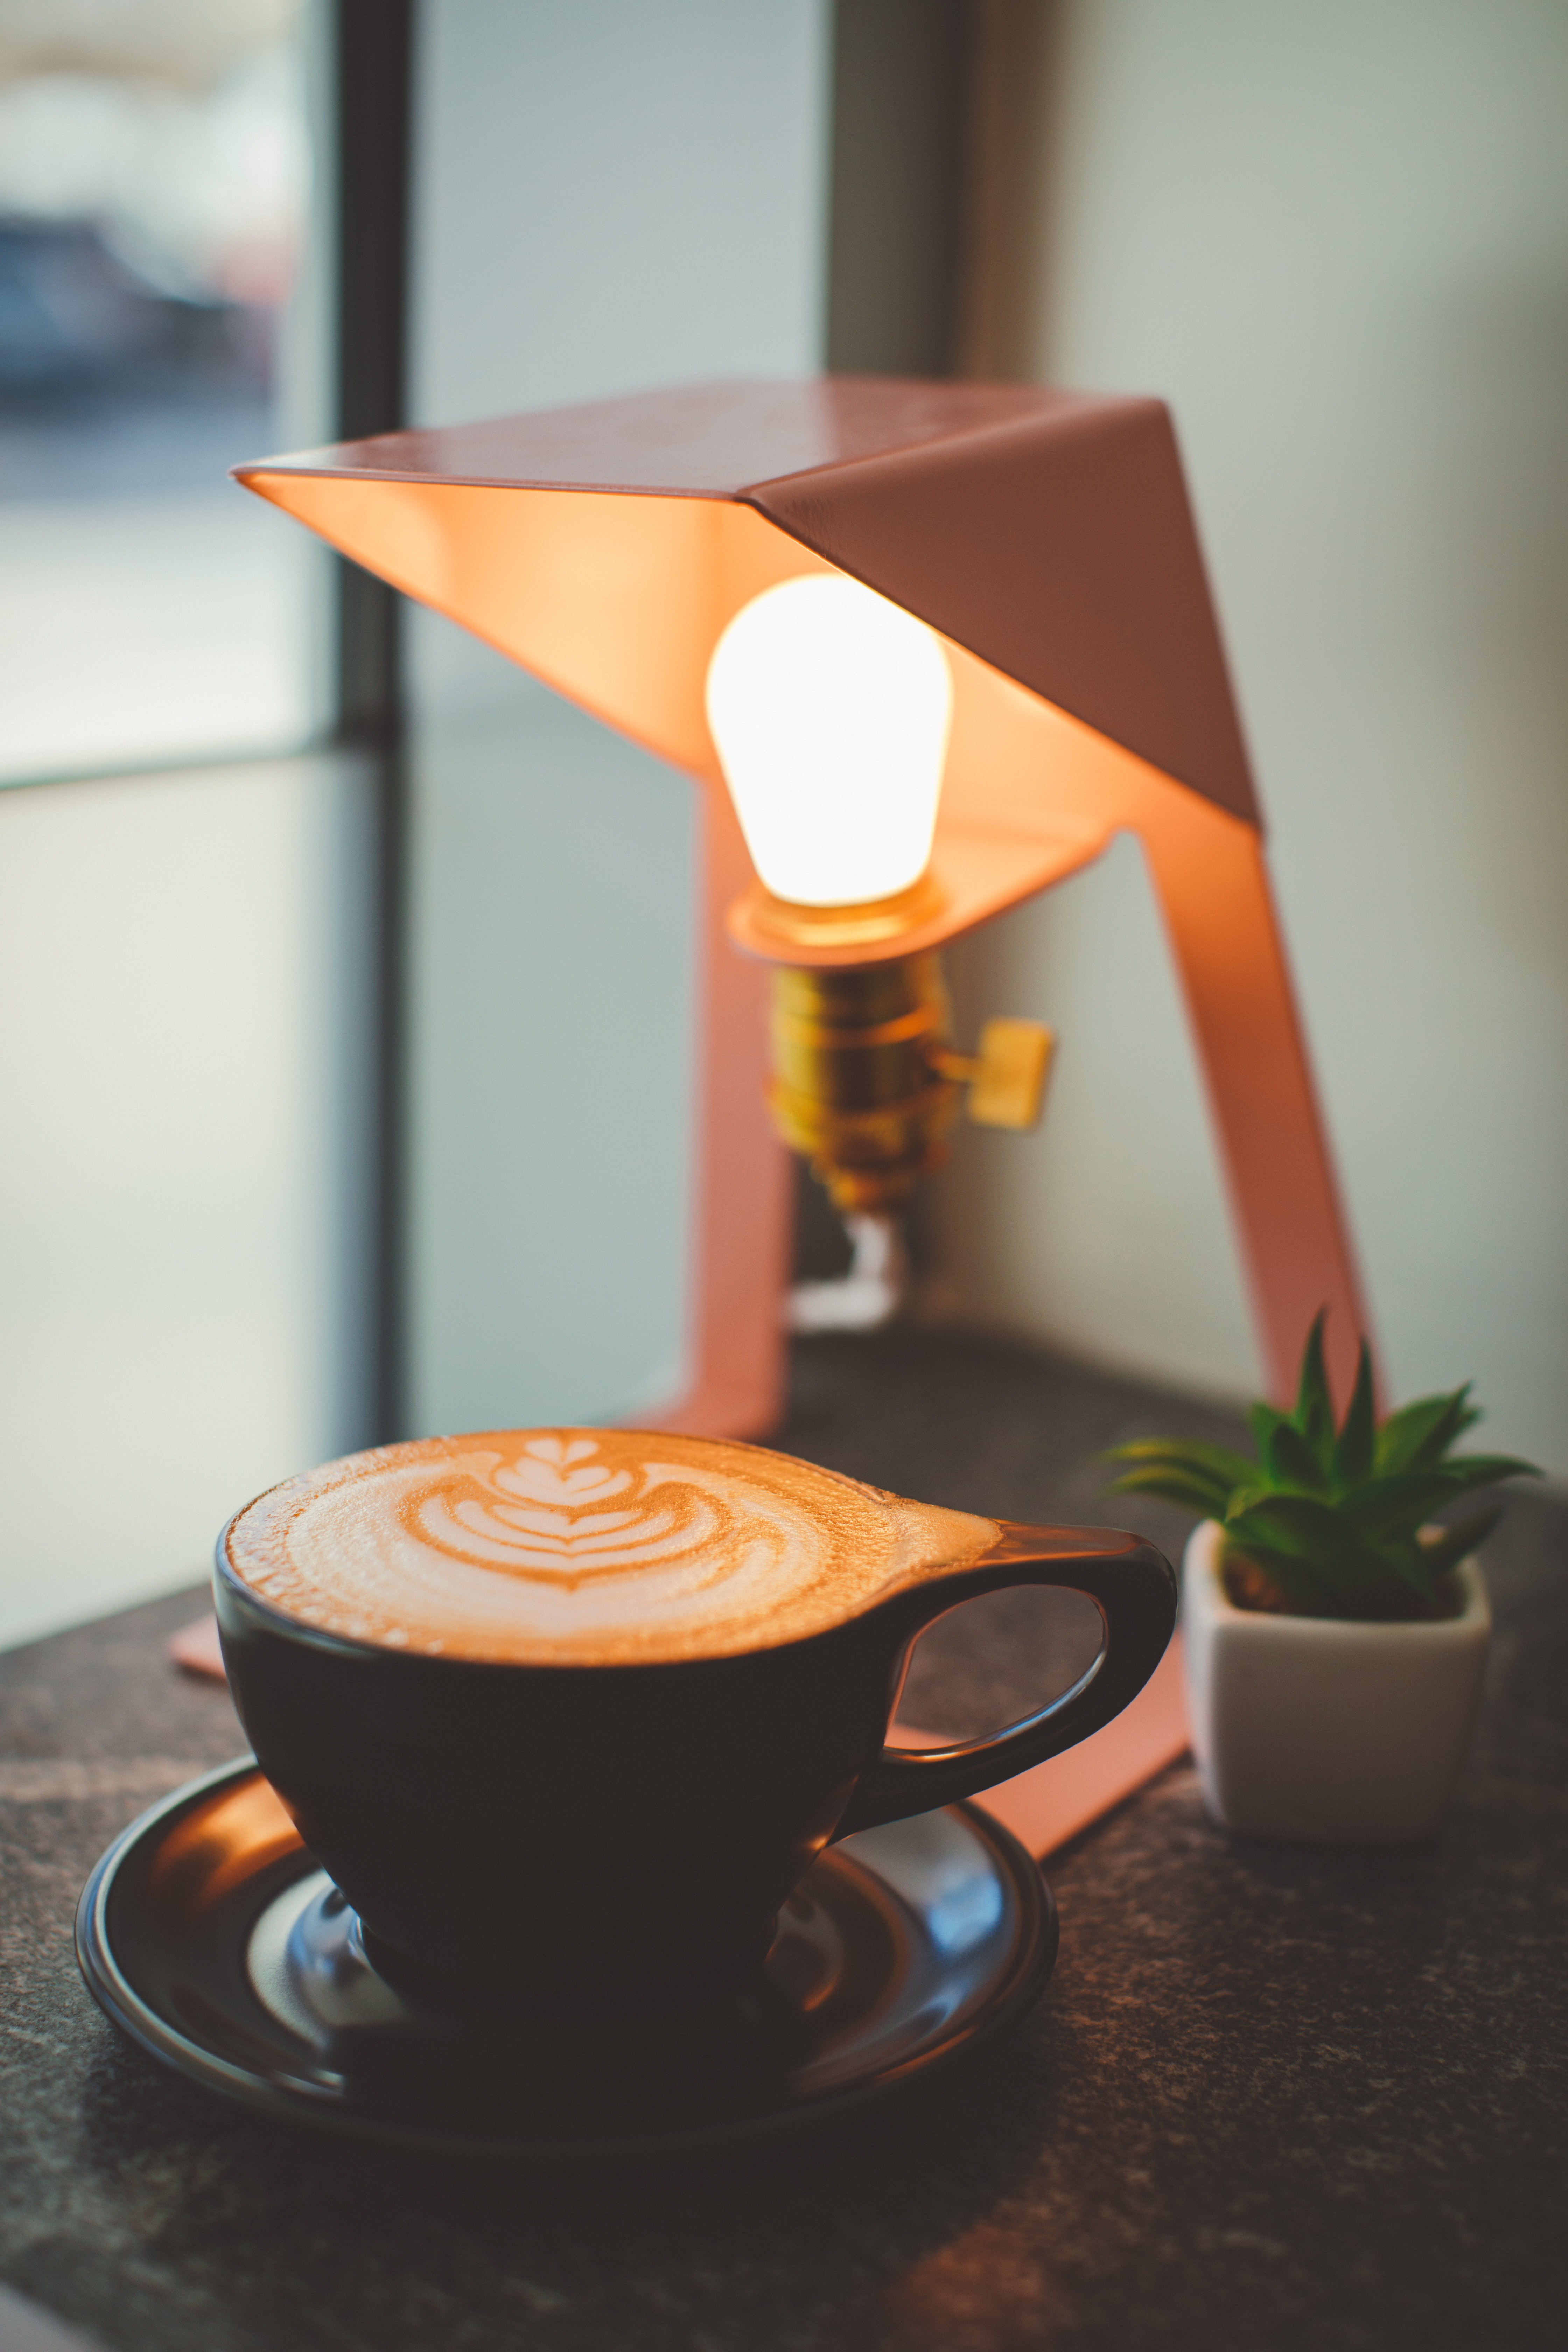 cup of cappuccino near table lamp